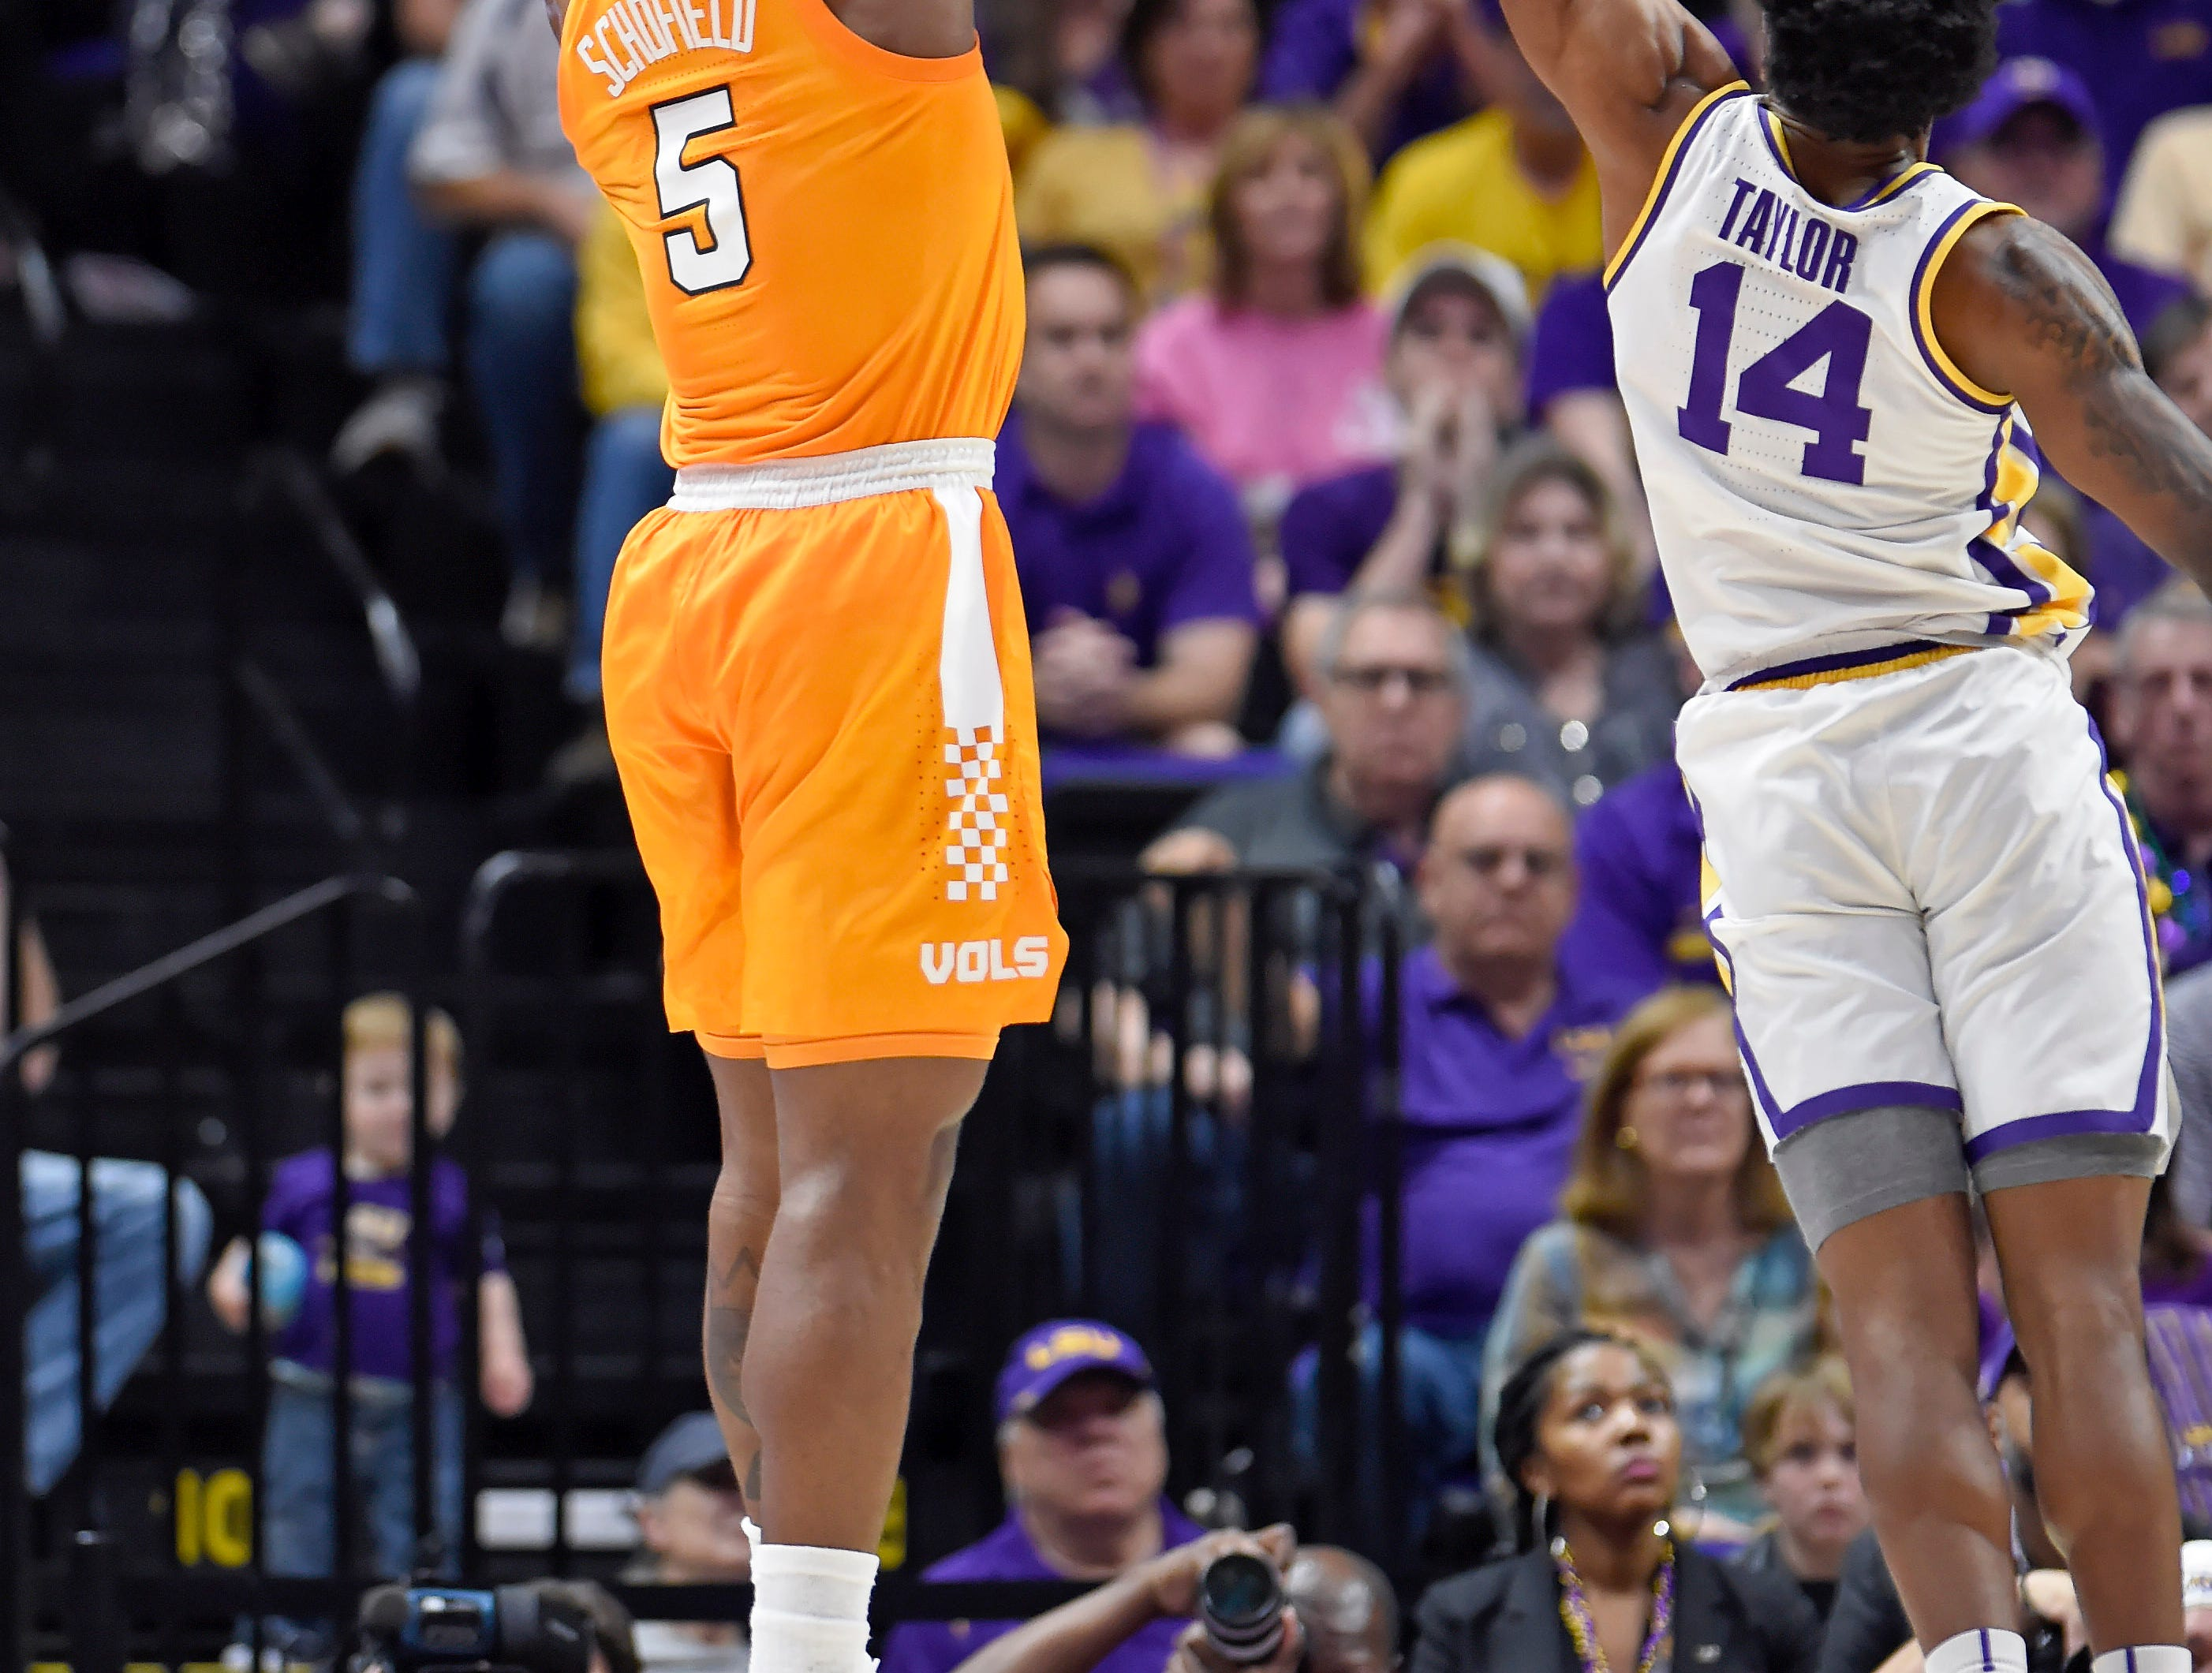 Tennessee guard Admiral Schofield (5) puts the ball up for 3-points as LSU guard Marlon Taylor (14) defends in the first half of an NCAA college basketball game, Saturday, Feb. 23, 2019, in Baton Rouge, La. (AP Photo/Bill Feig)